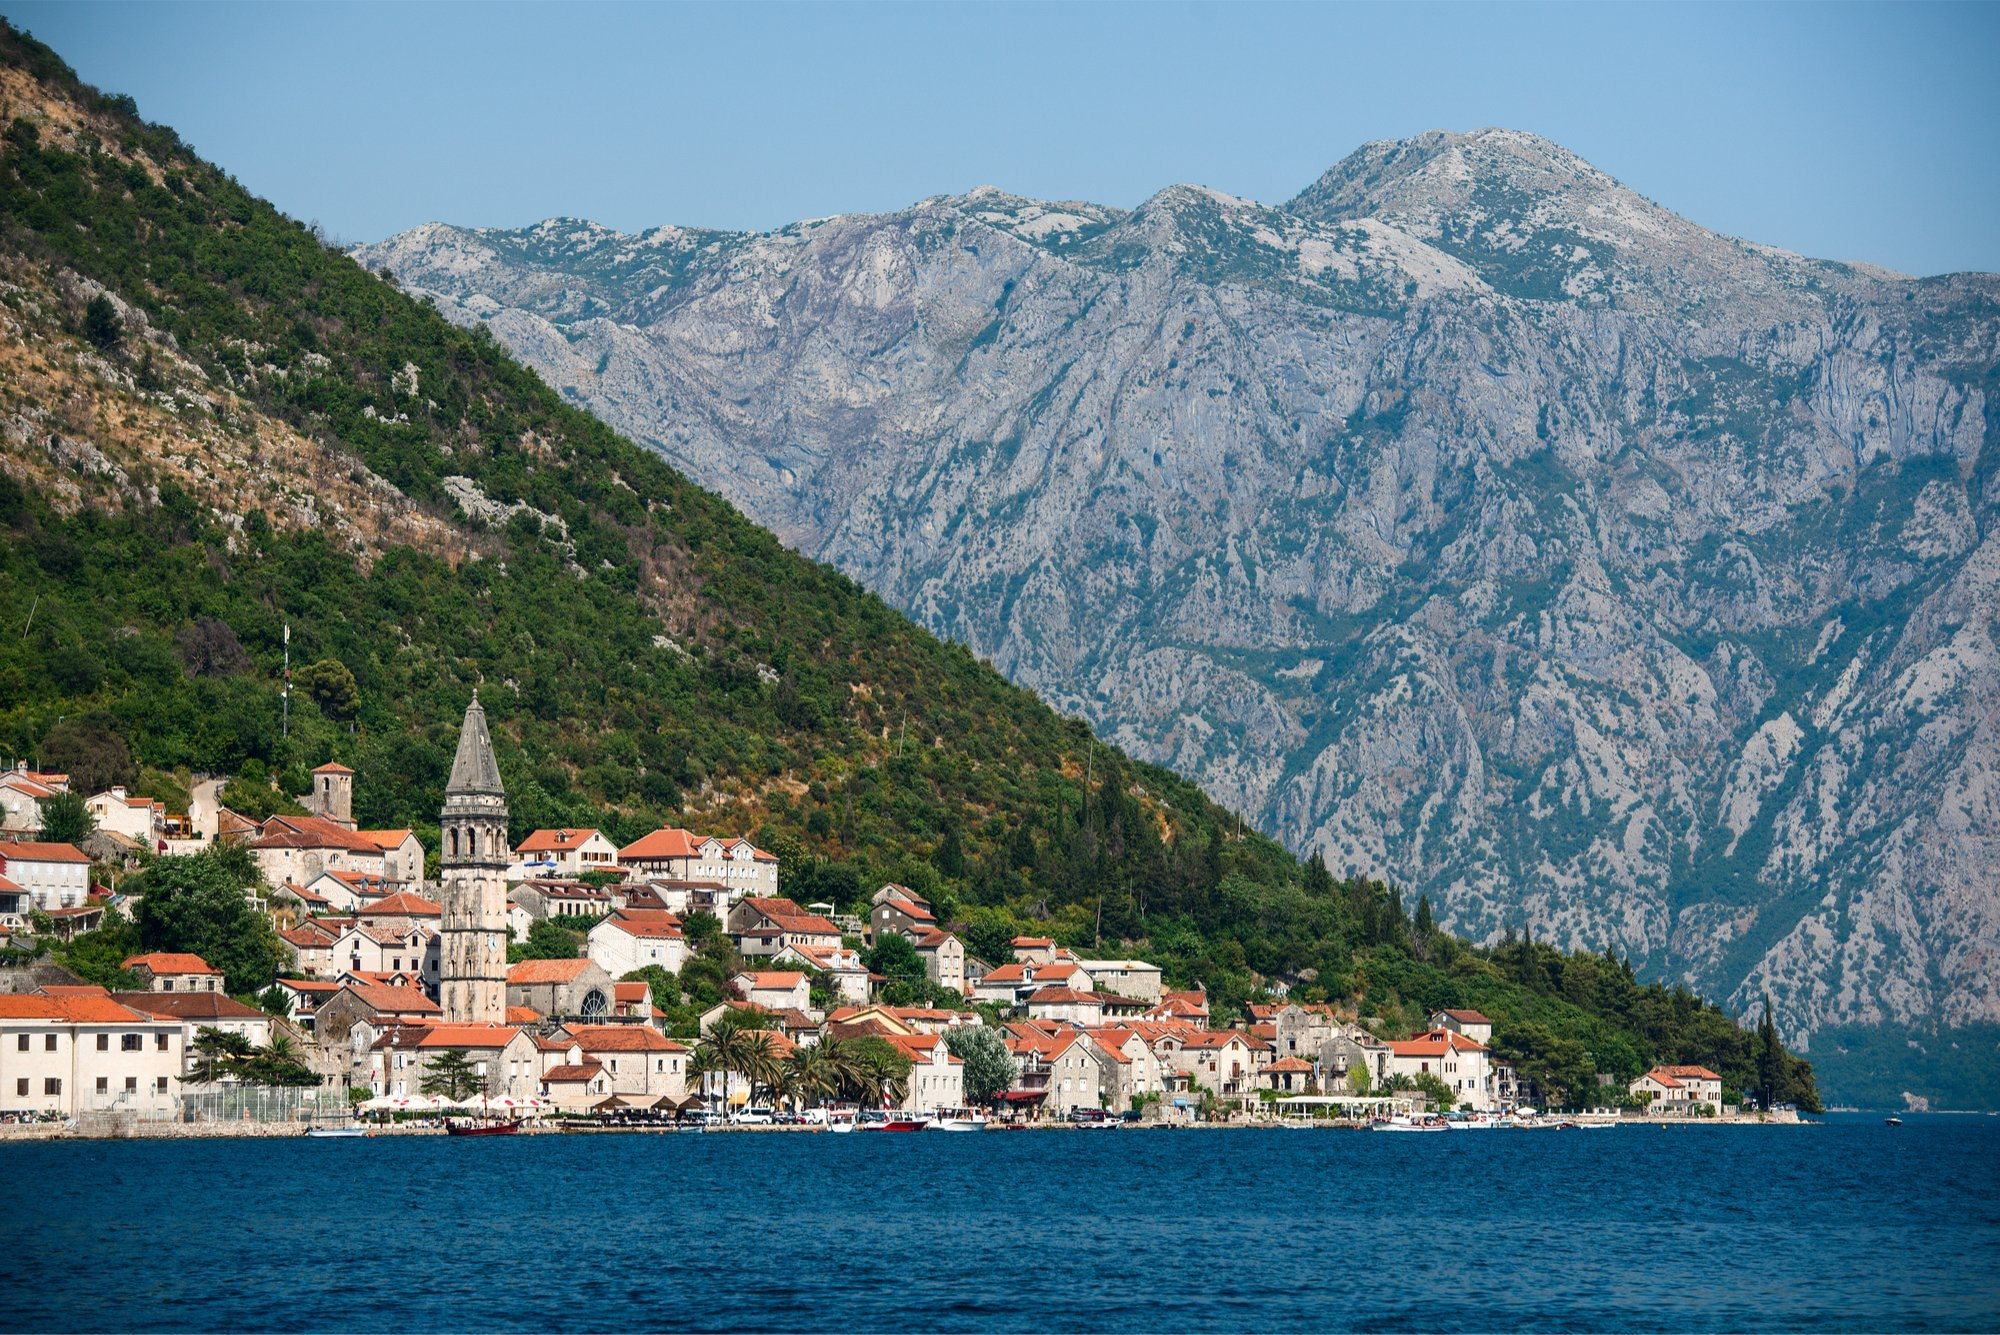 montenegro walking tour, south montenegro and kotor bay in style (strenuous)